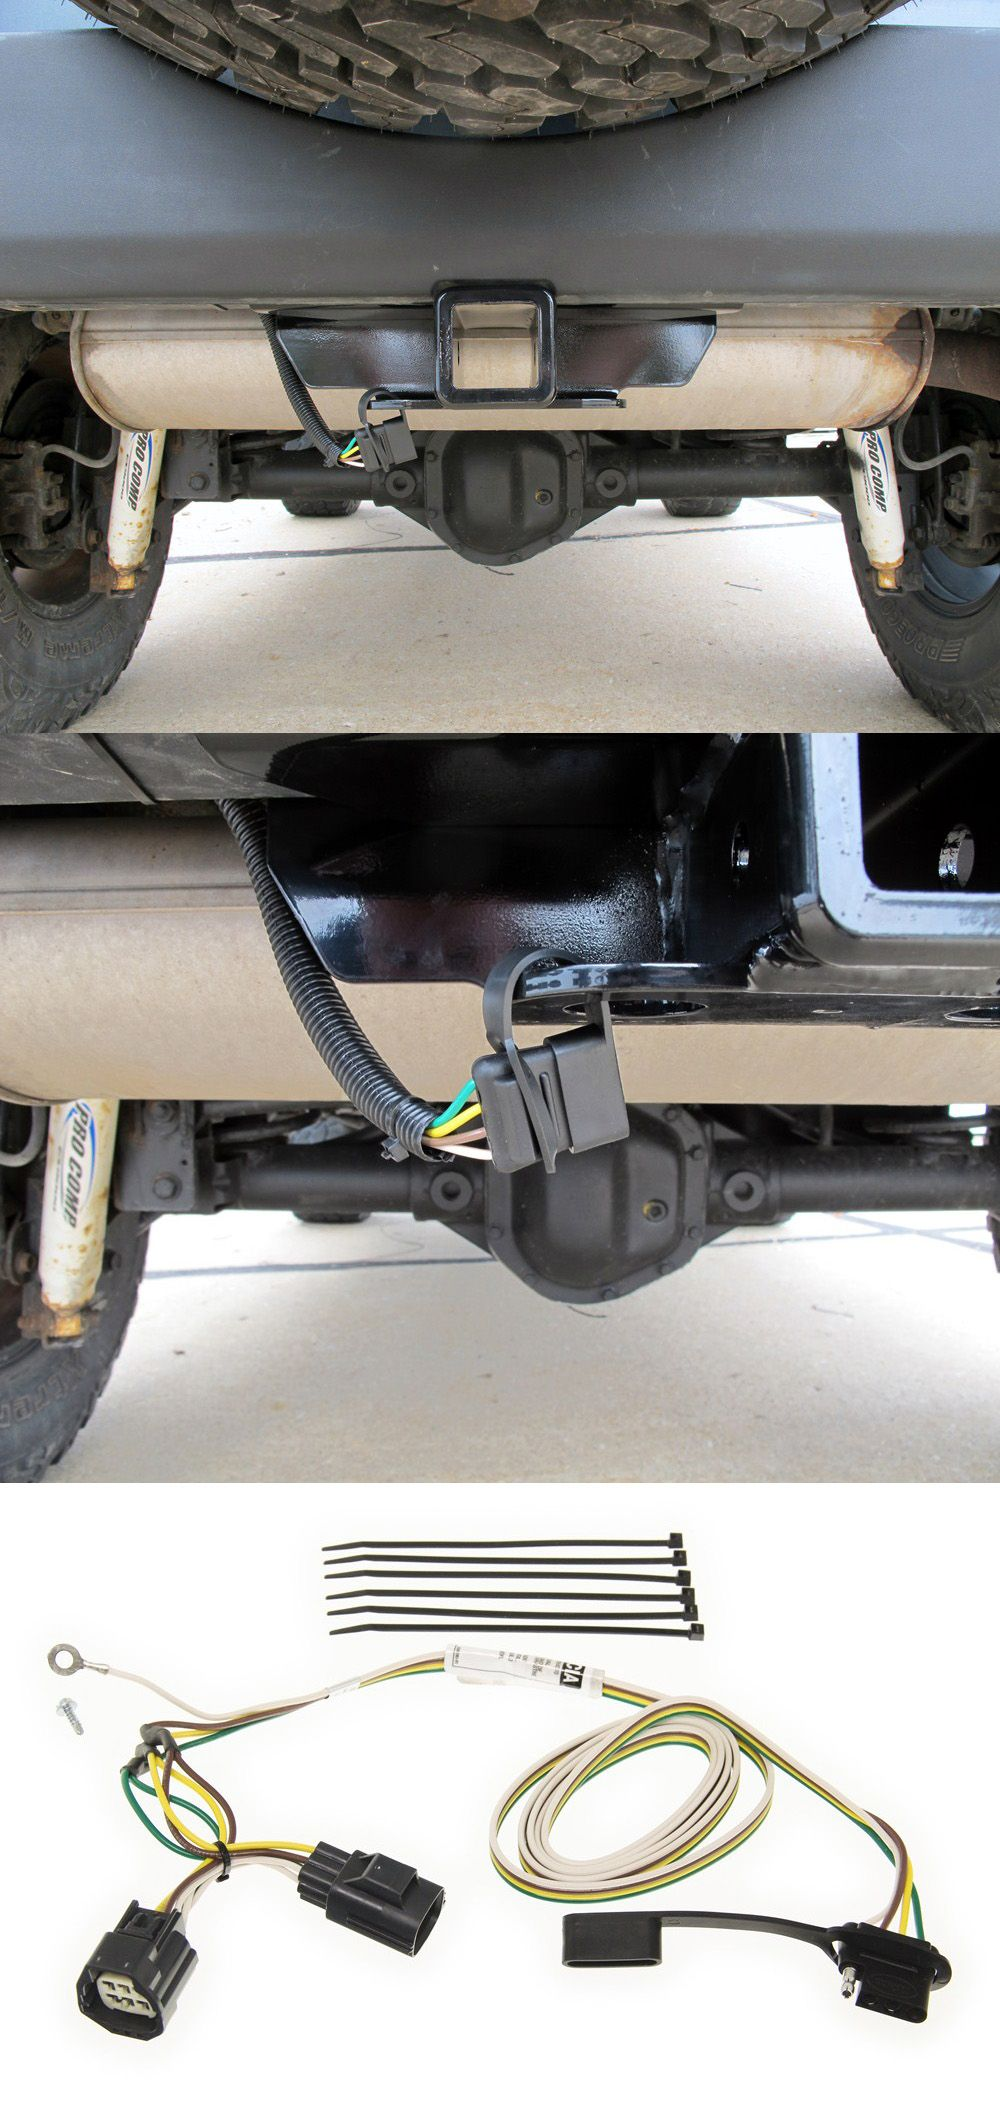 Curt T Connector Vehicle Wiring Harness With 4 Pole Flat Trailer Pro Comp Quickly And Easily Install A Way On Your Jeep Wrangler This Custom Plus Directly Into Existing No Cutting